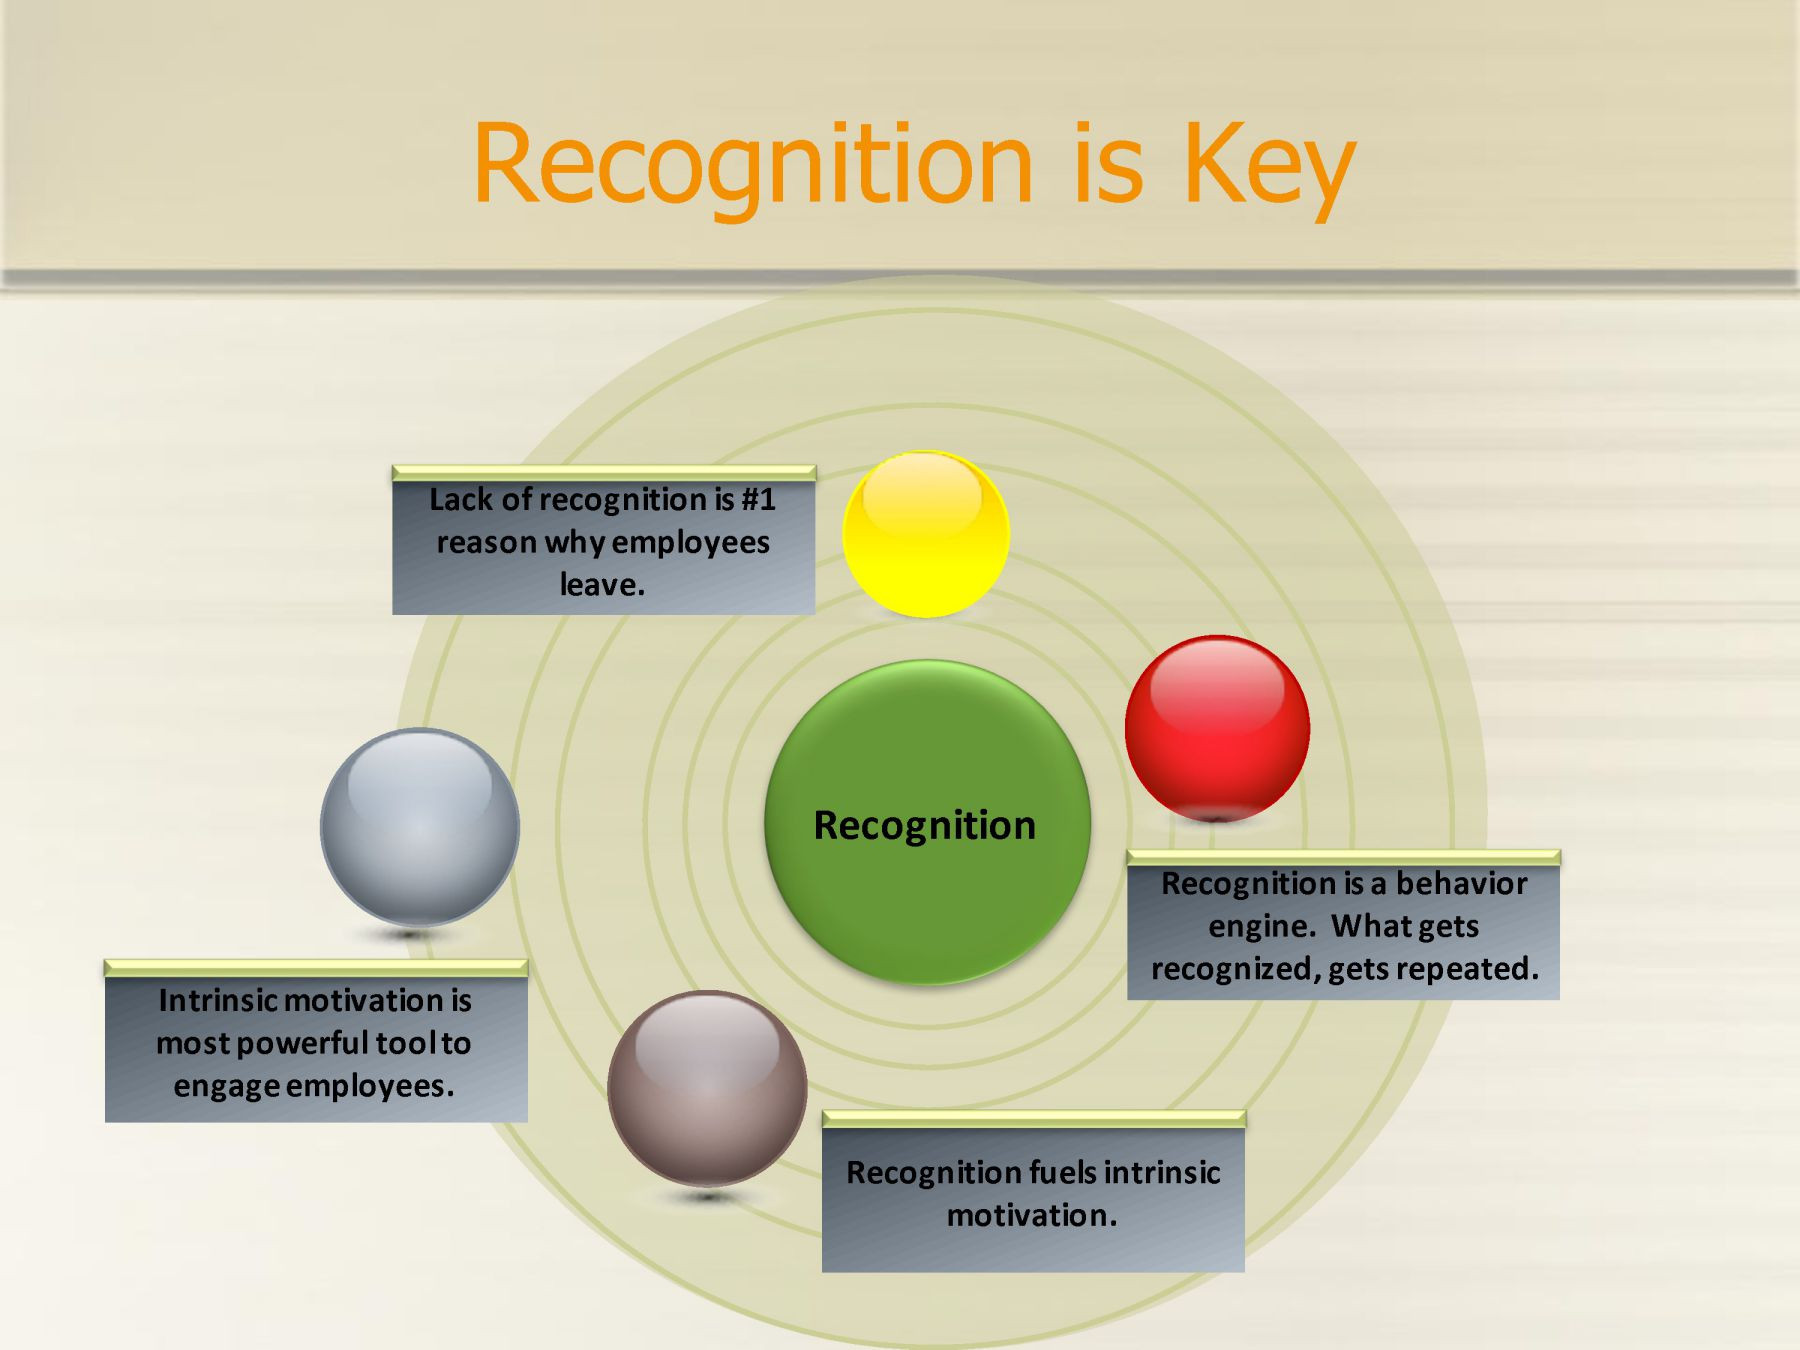 rewards and recognition The benefits of using well-designed employee recognition programs forrewarding good performance.